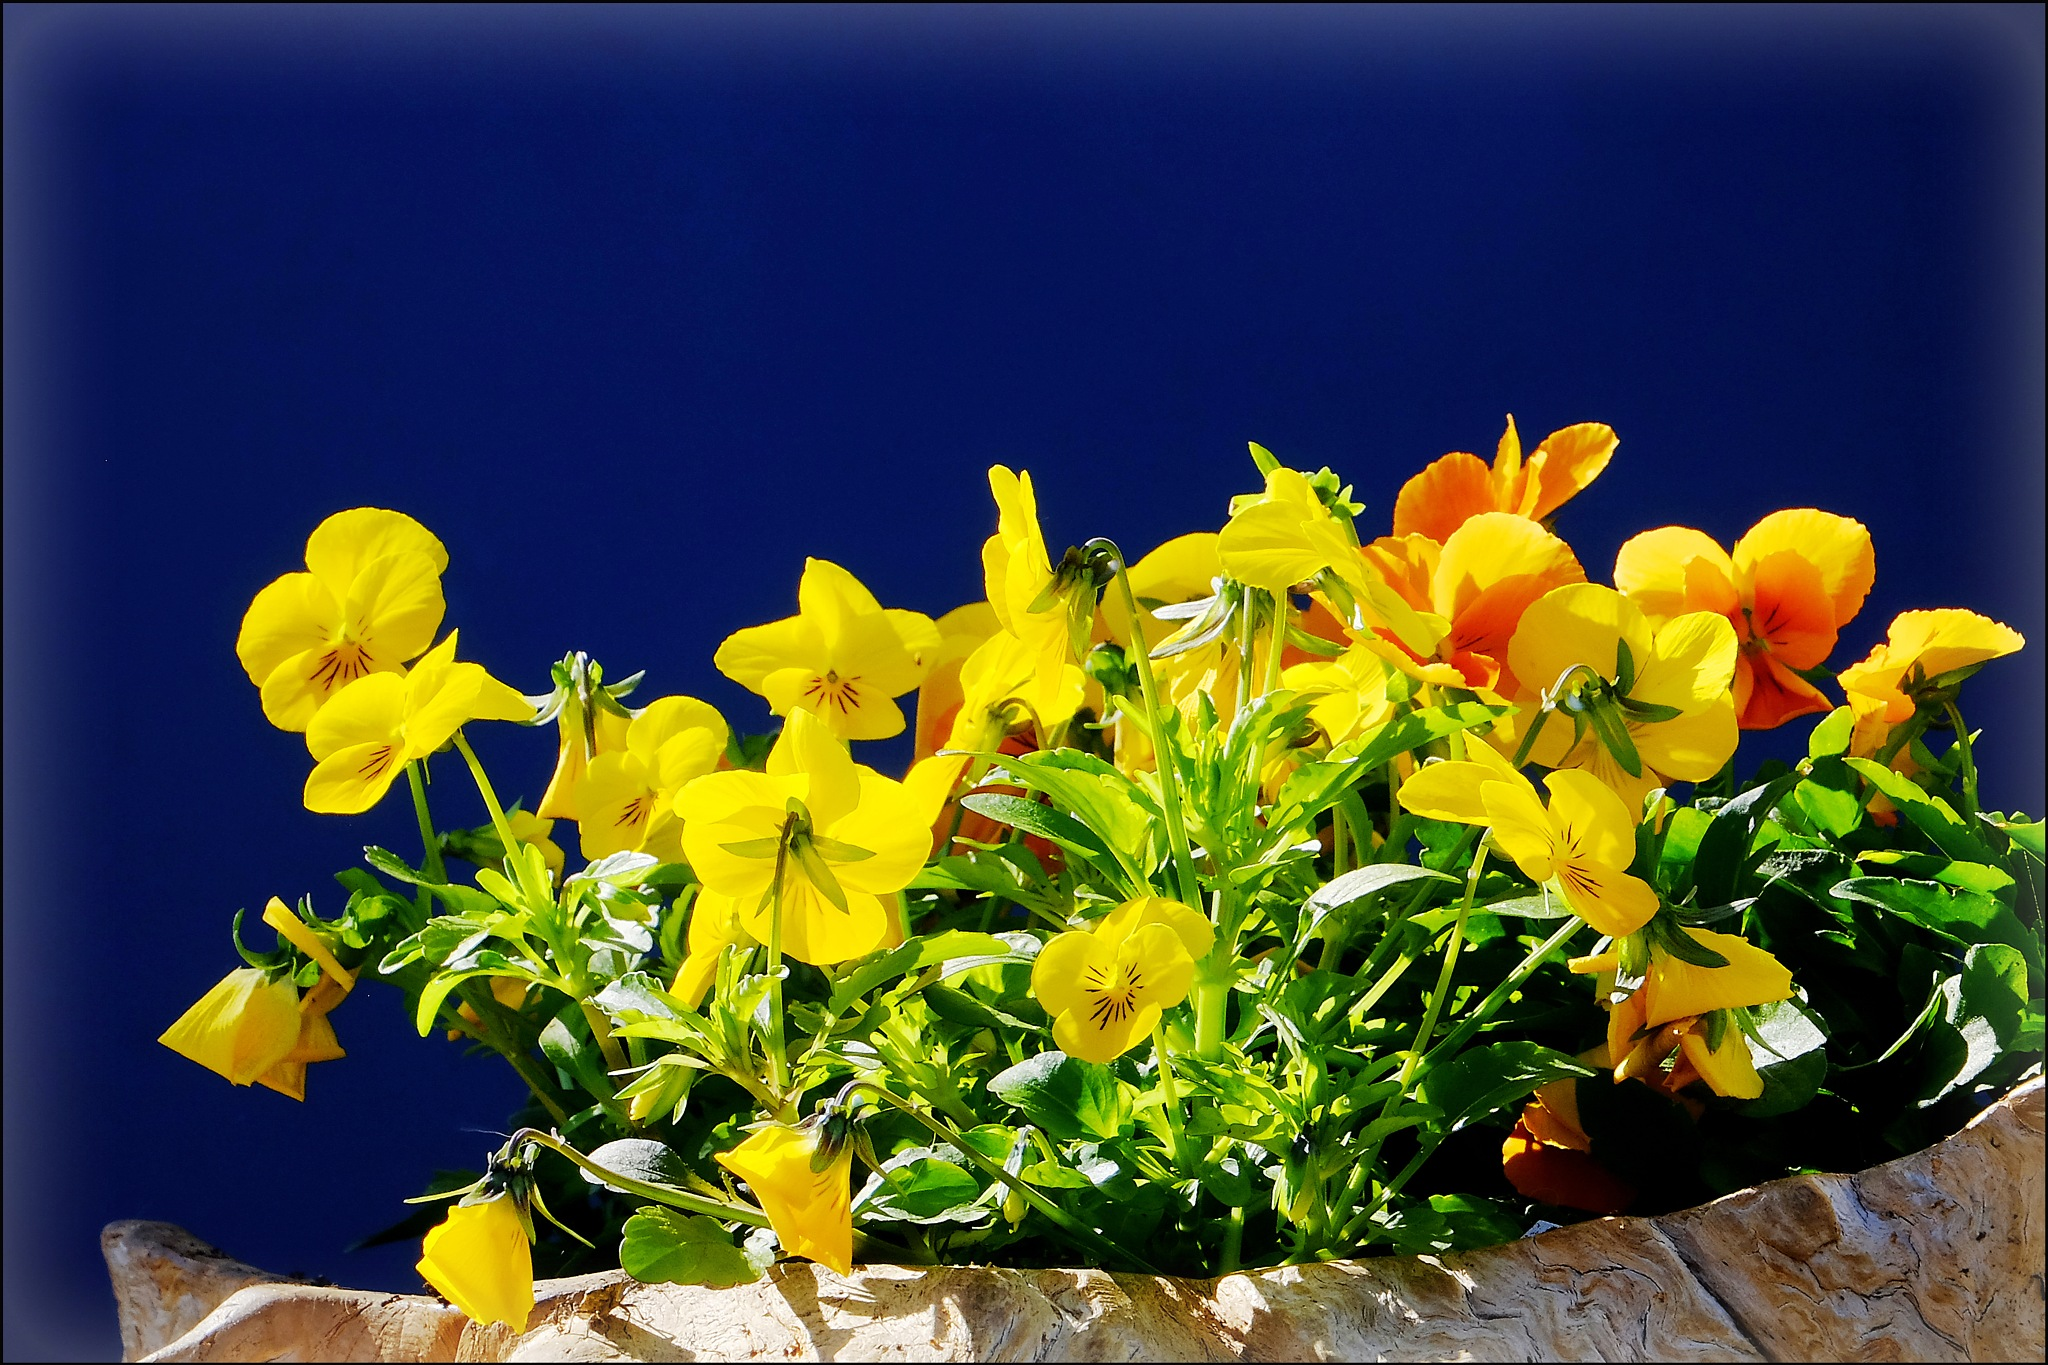 Yellow Pansies & Blue by Jan Arvid Solem